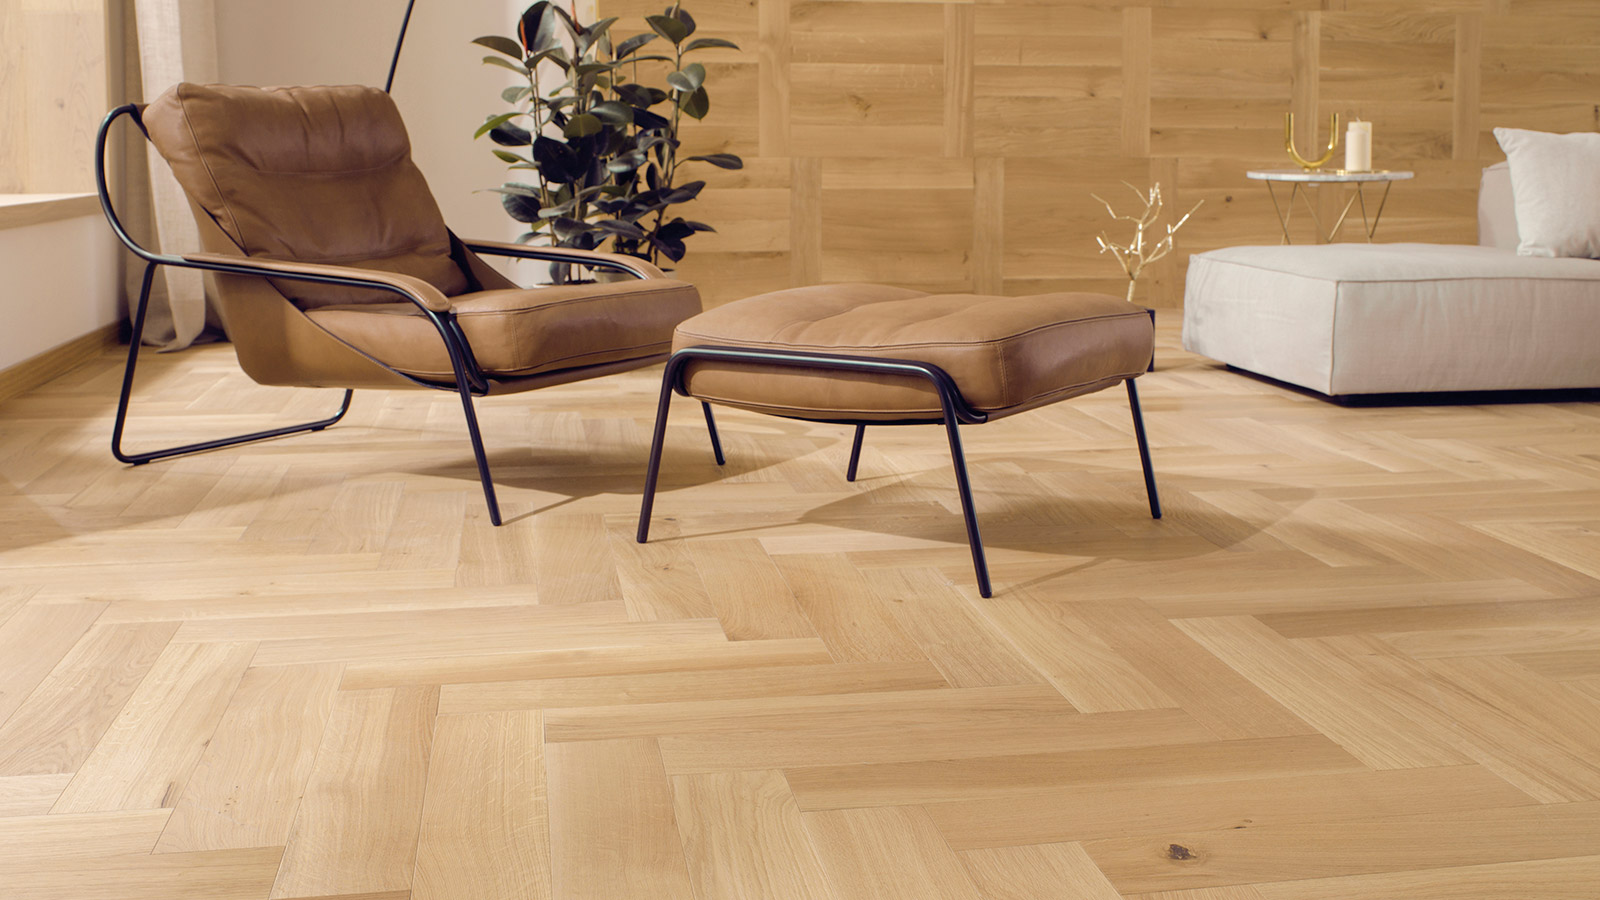 Herringbone flooring, a timeless classic approach to laying floors